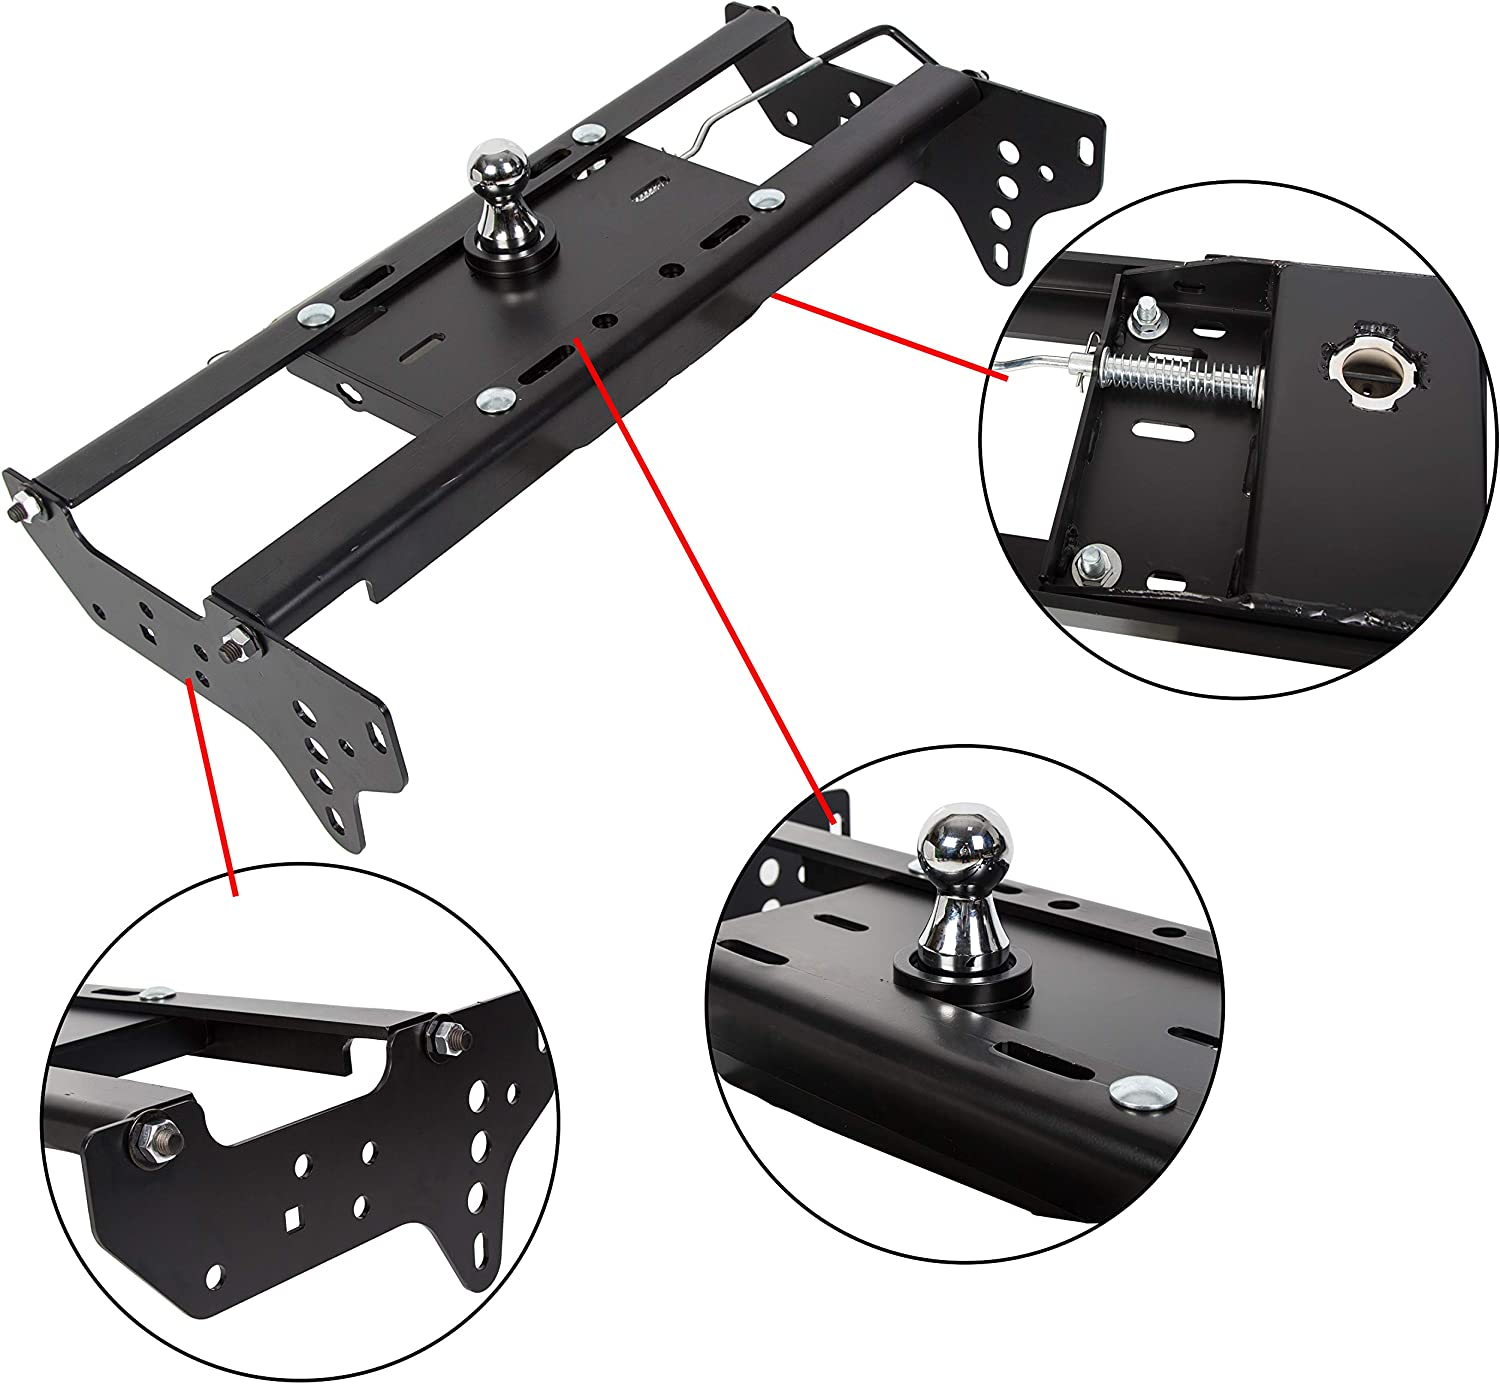 ECOTRIC Gooseneck Trailer Seattle Mall Hitch System Kit Safety and trust Complete Underbed Com